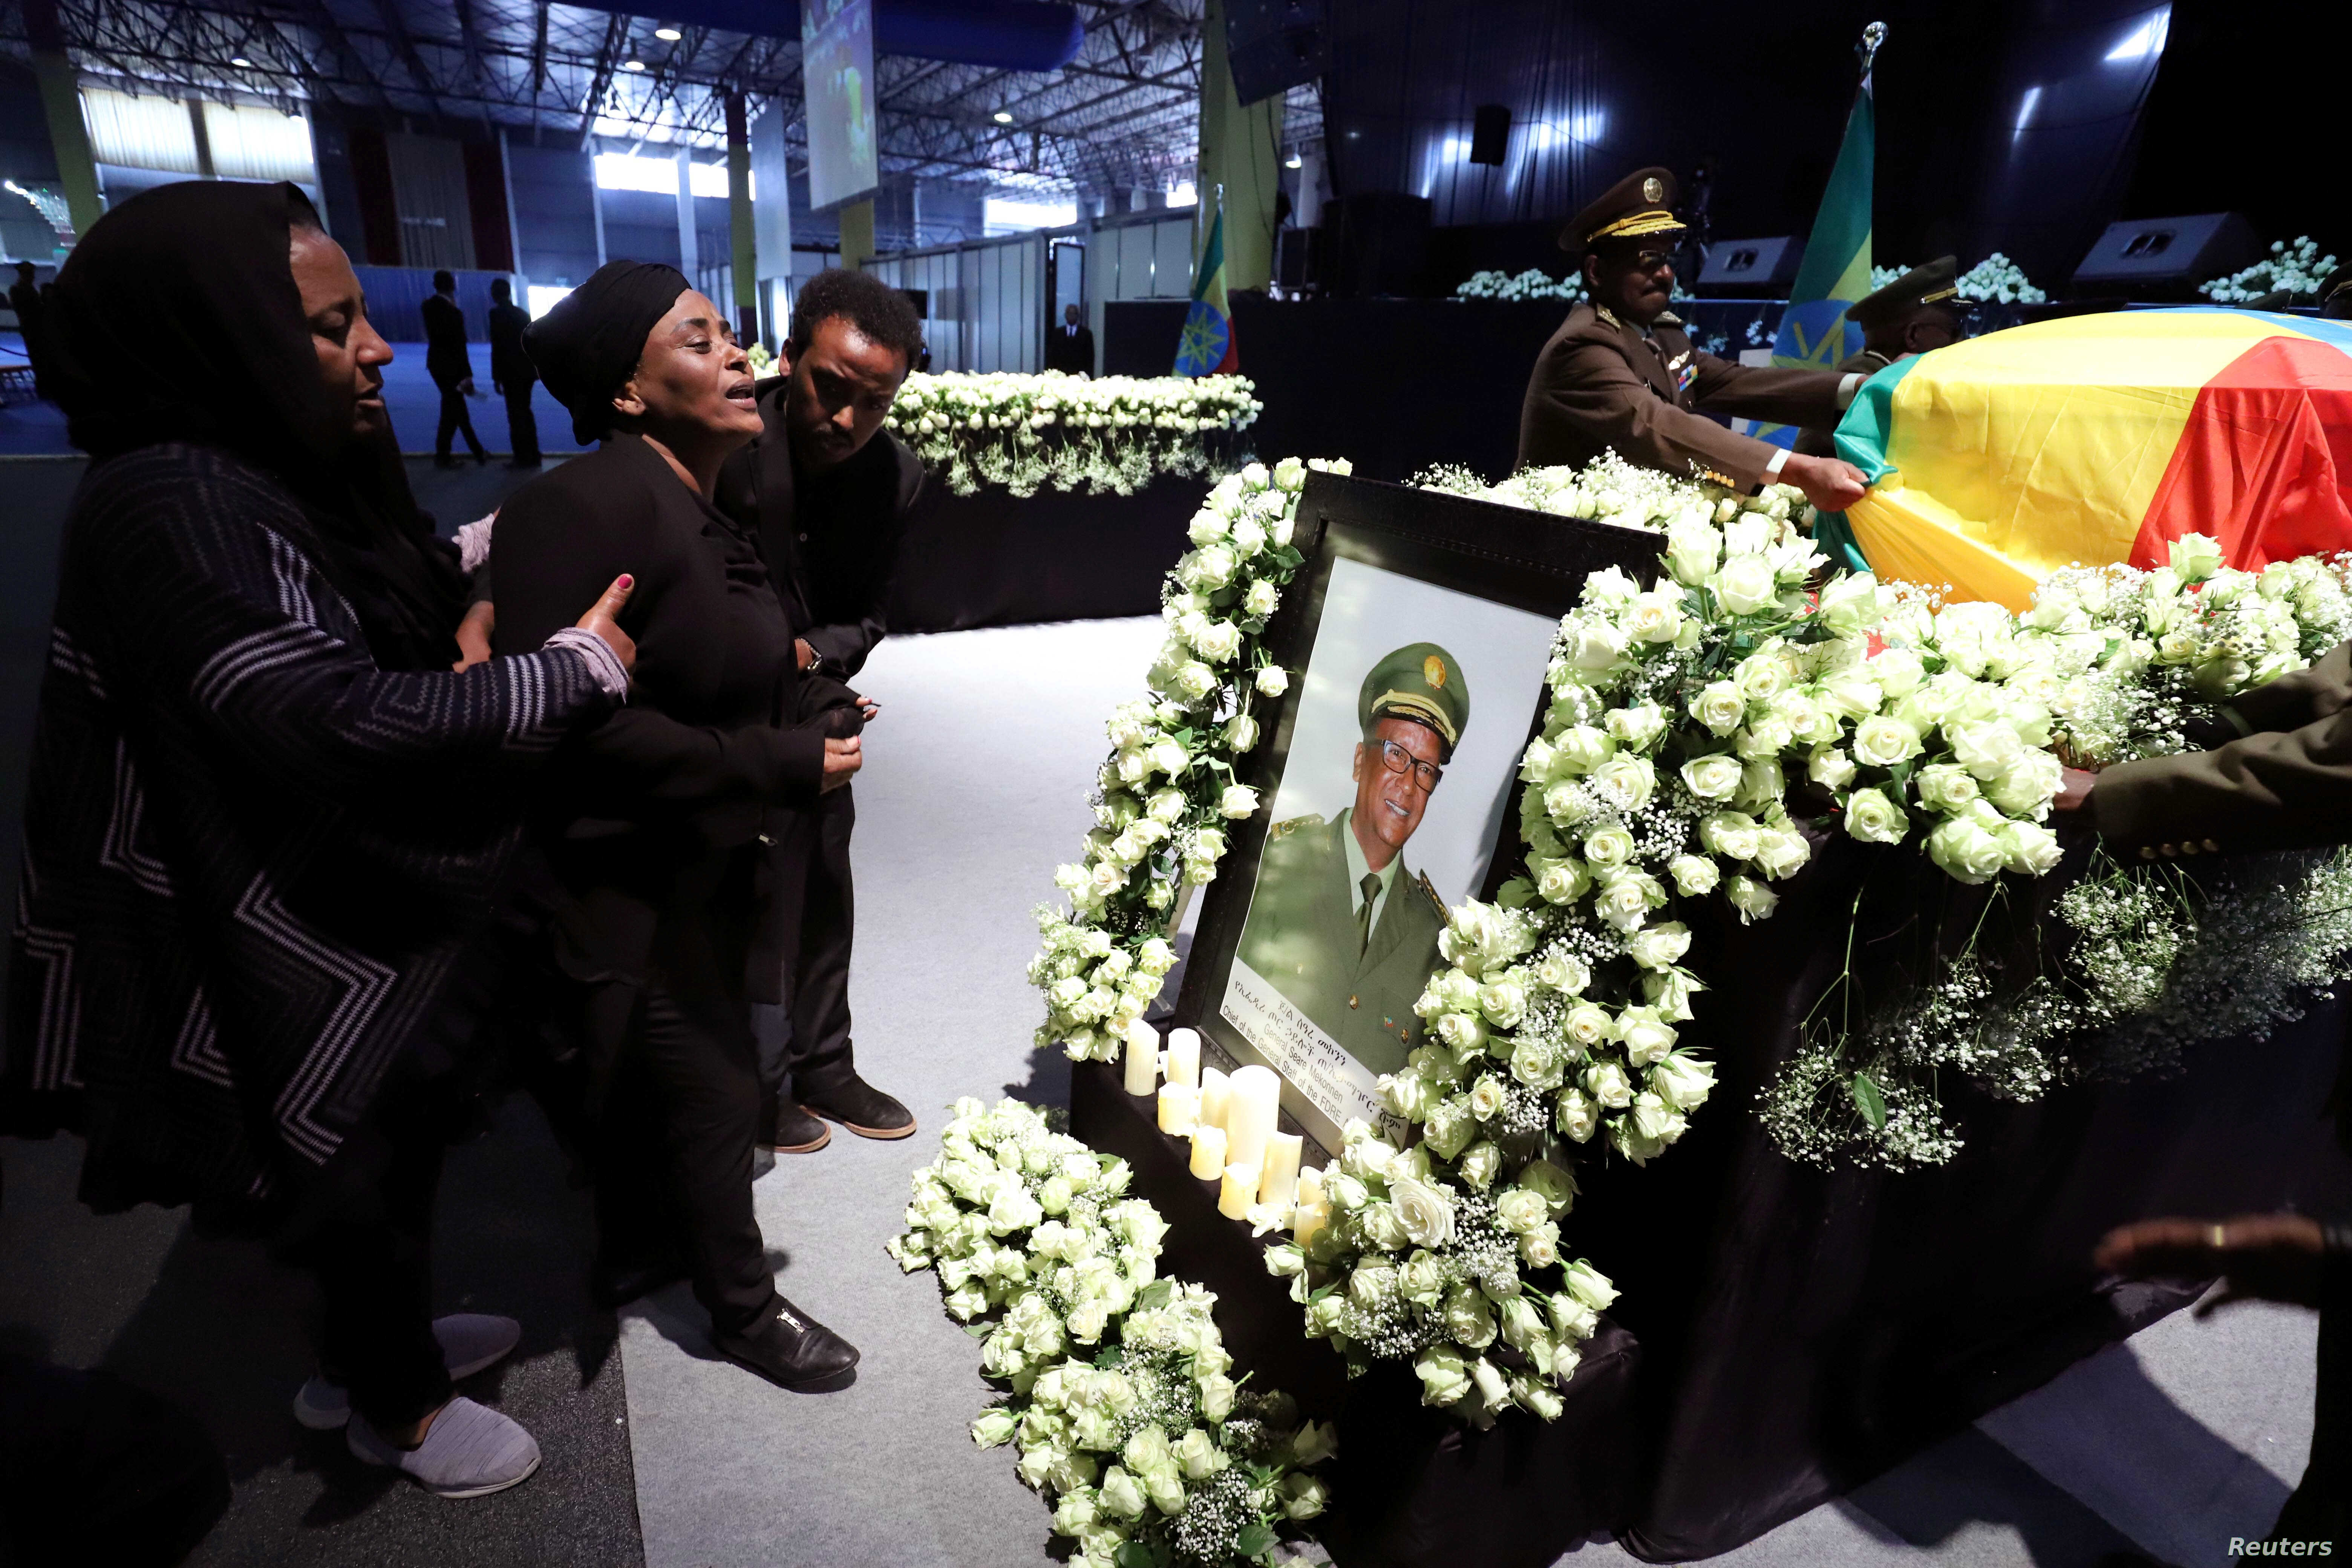 Relatives mourn in front of the coffin of the country's Army Chief of Staff Seare Mekonnen, who was shot by his bodyguard, during a memorial ceremony in Addis Ababa, June 25, 2019.